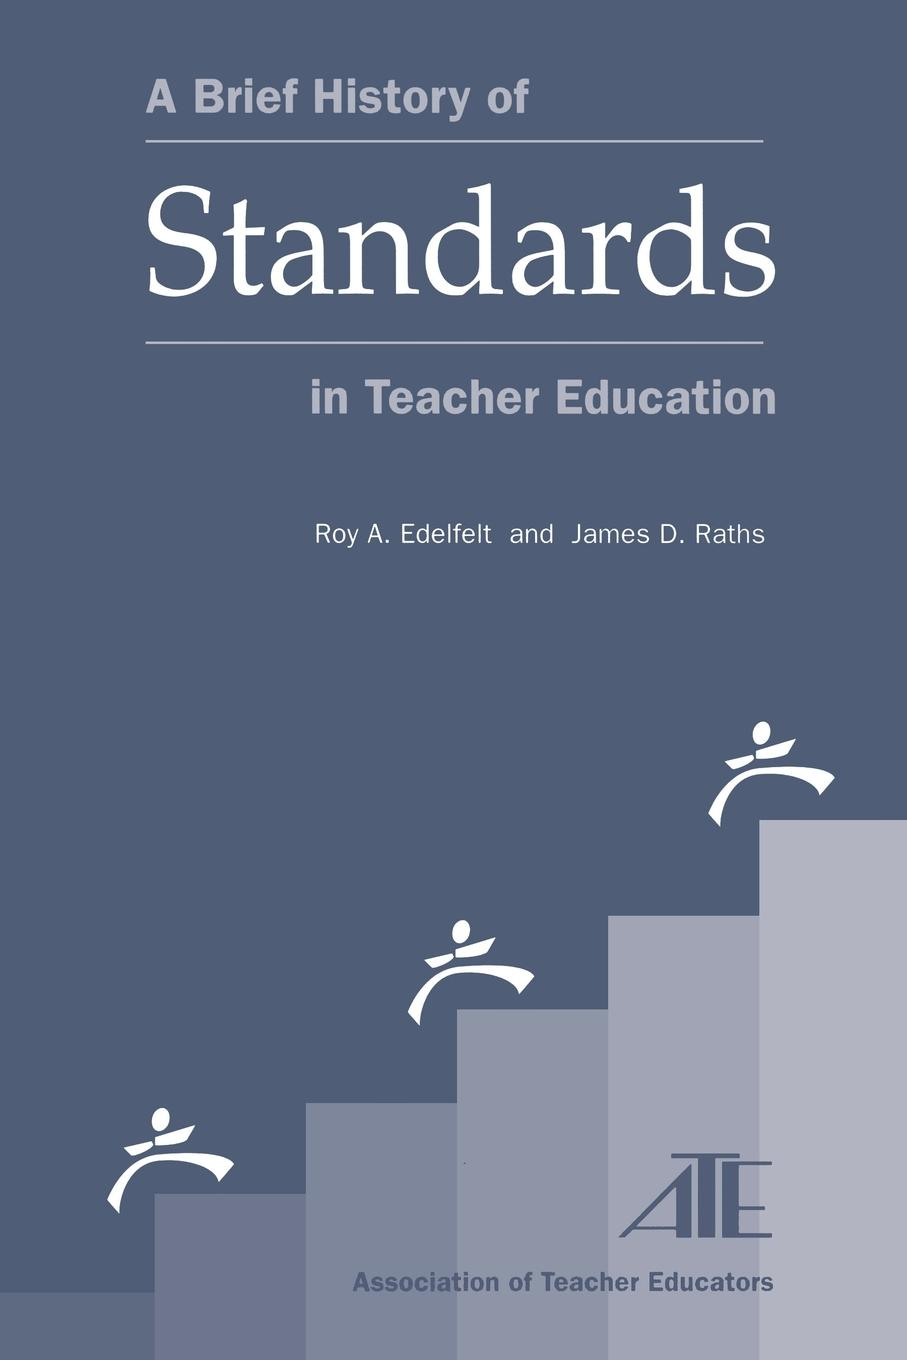 A Brief History of Standards in Teacher Education By: James D. Raths,Roy A. Edelfelt